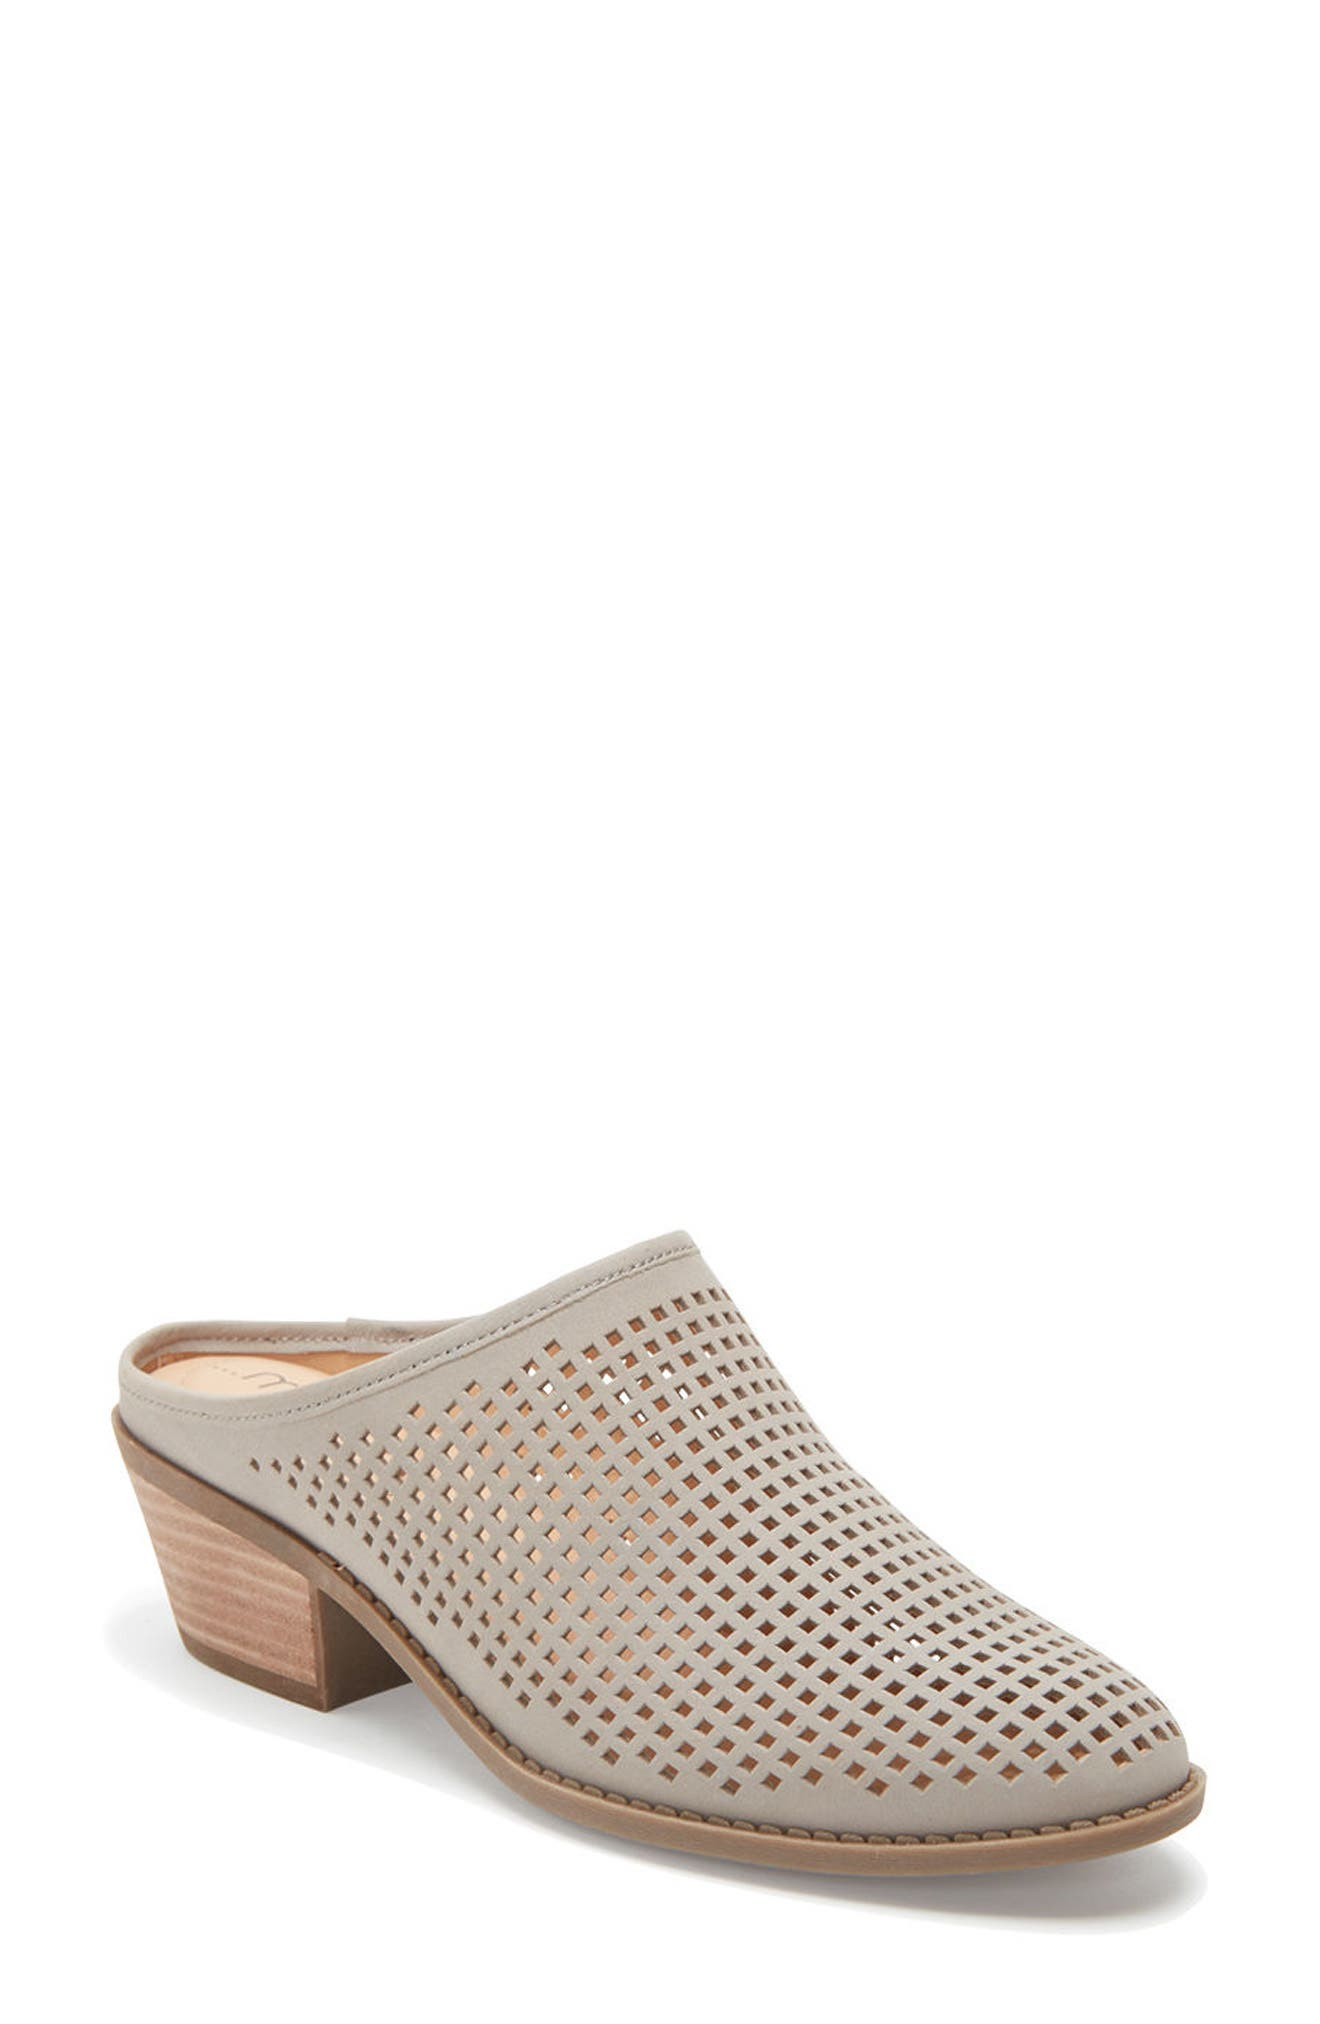 Zara Block Heel Mule,                         Main,                         color, 082